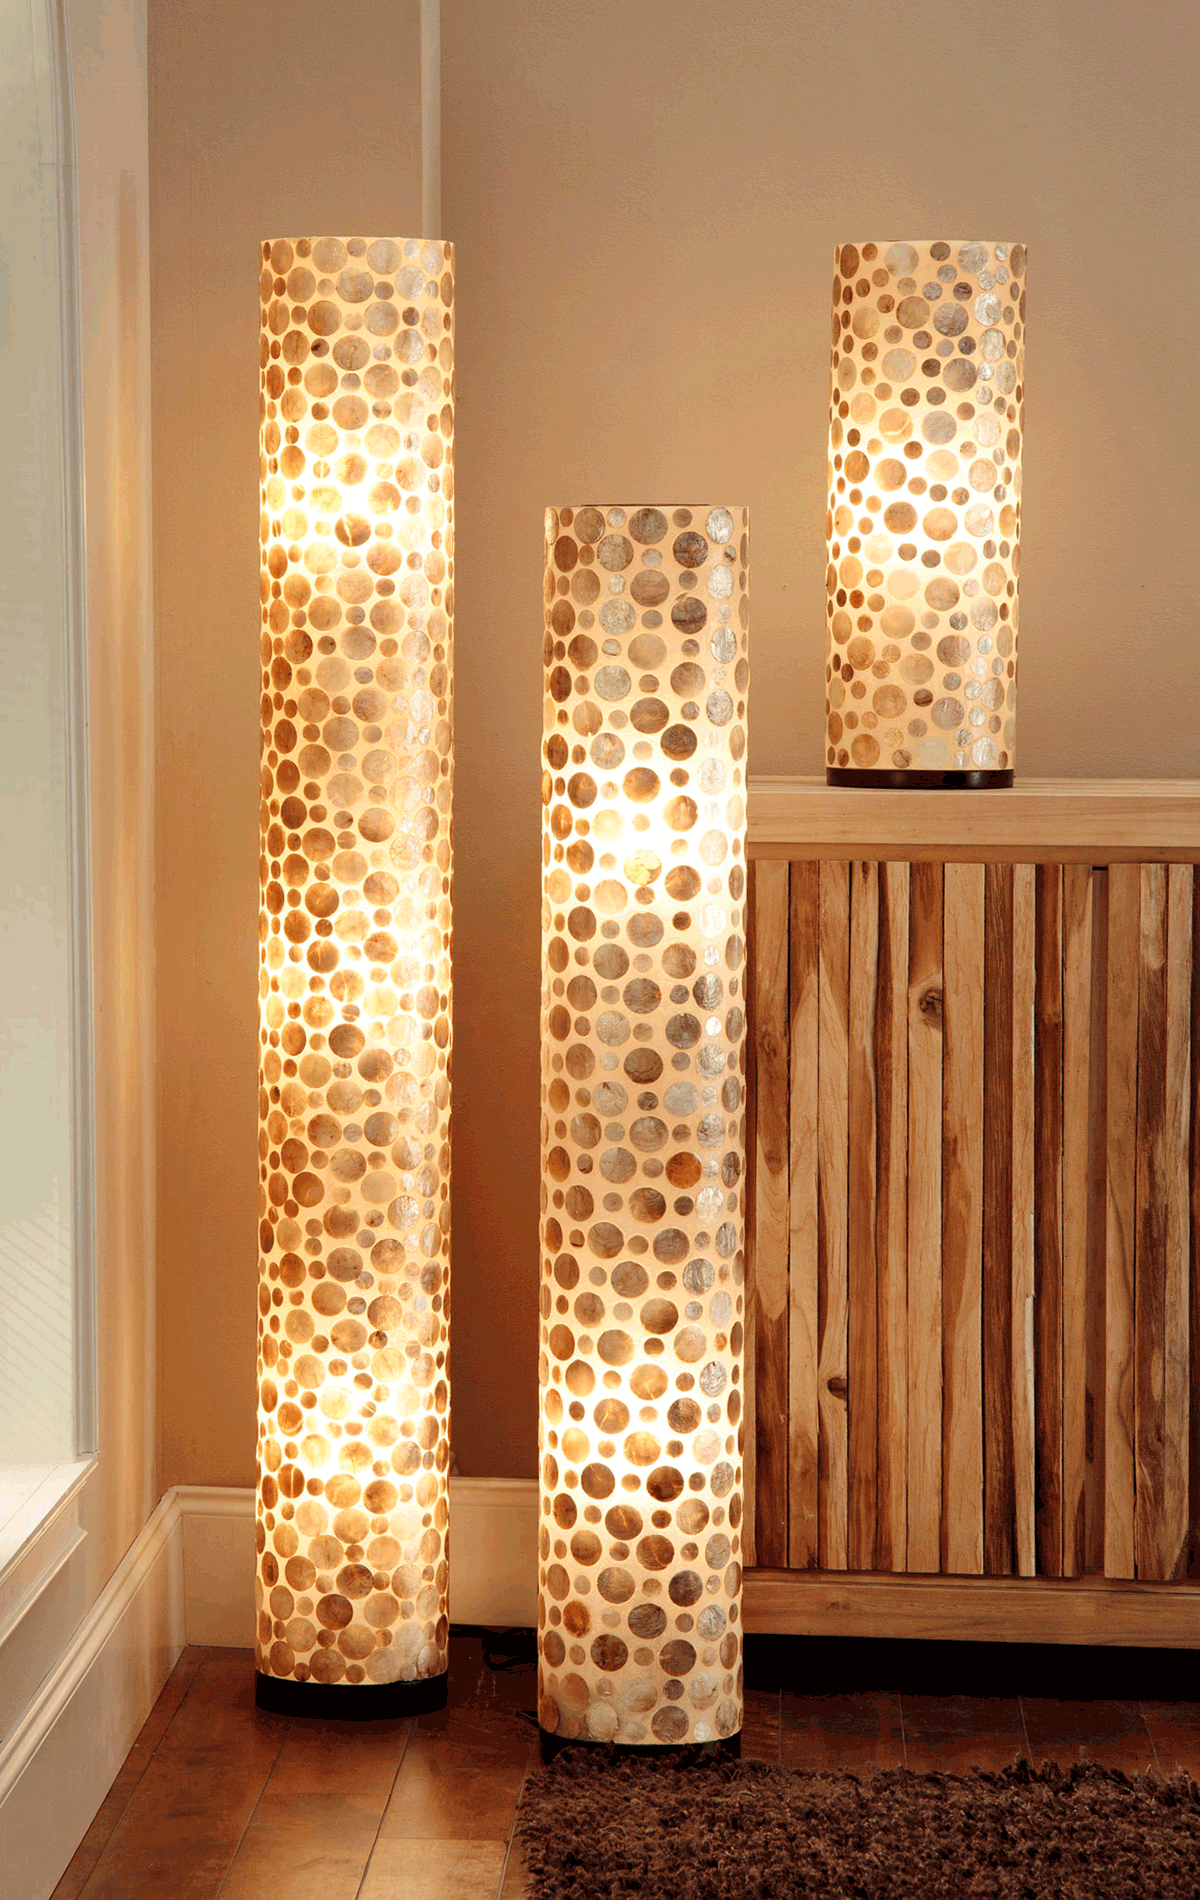 Bubbles Decorative Floor Round Lamp Mitrani At Home